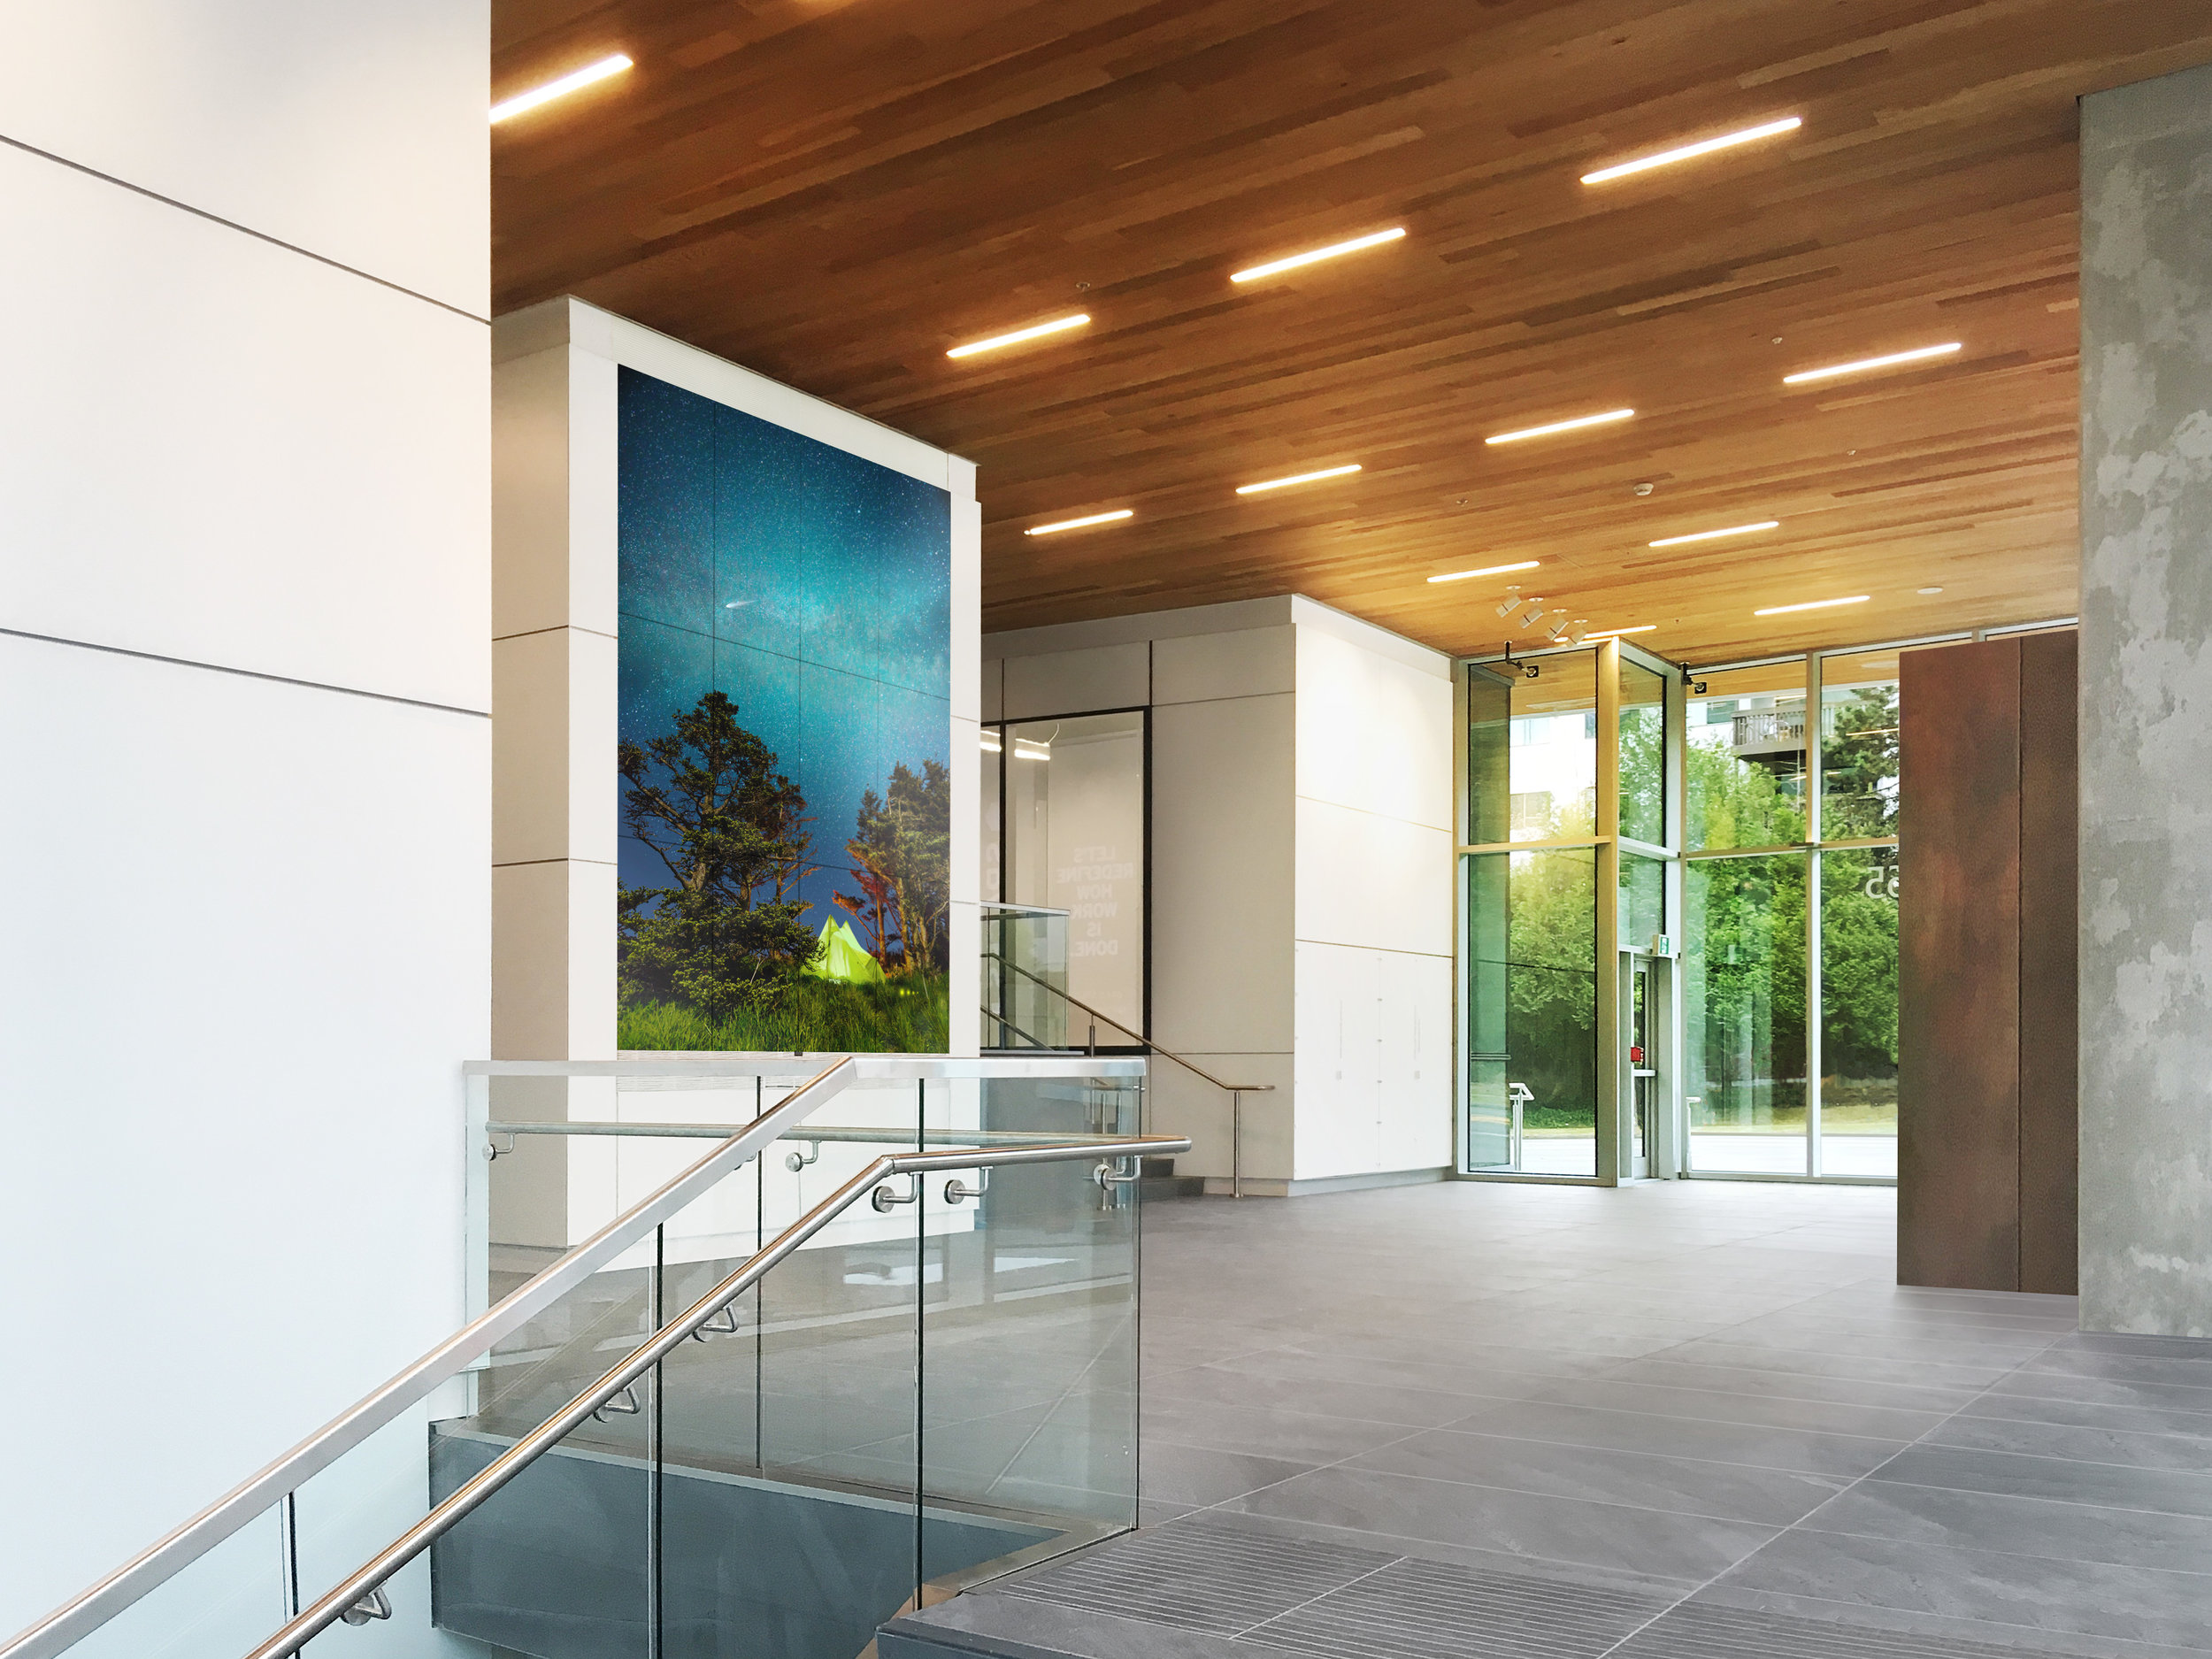 The Grand lobby of 569 Great Northern Way, featuring the 16-foot monumental video wall.